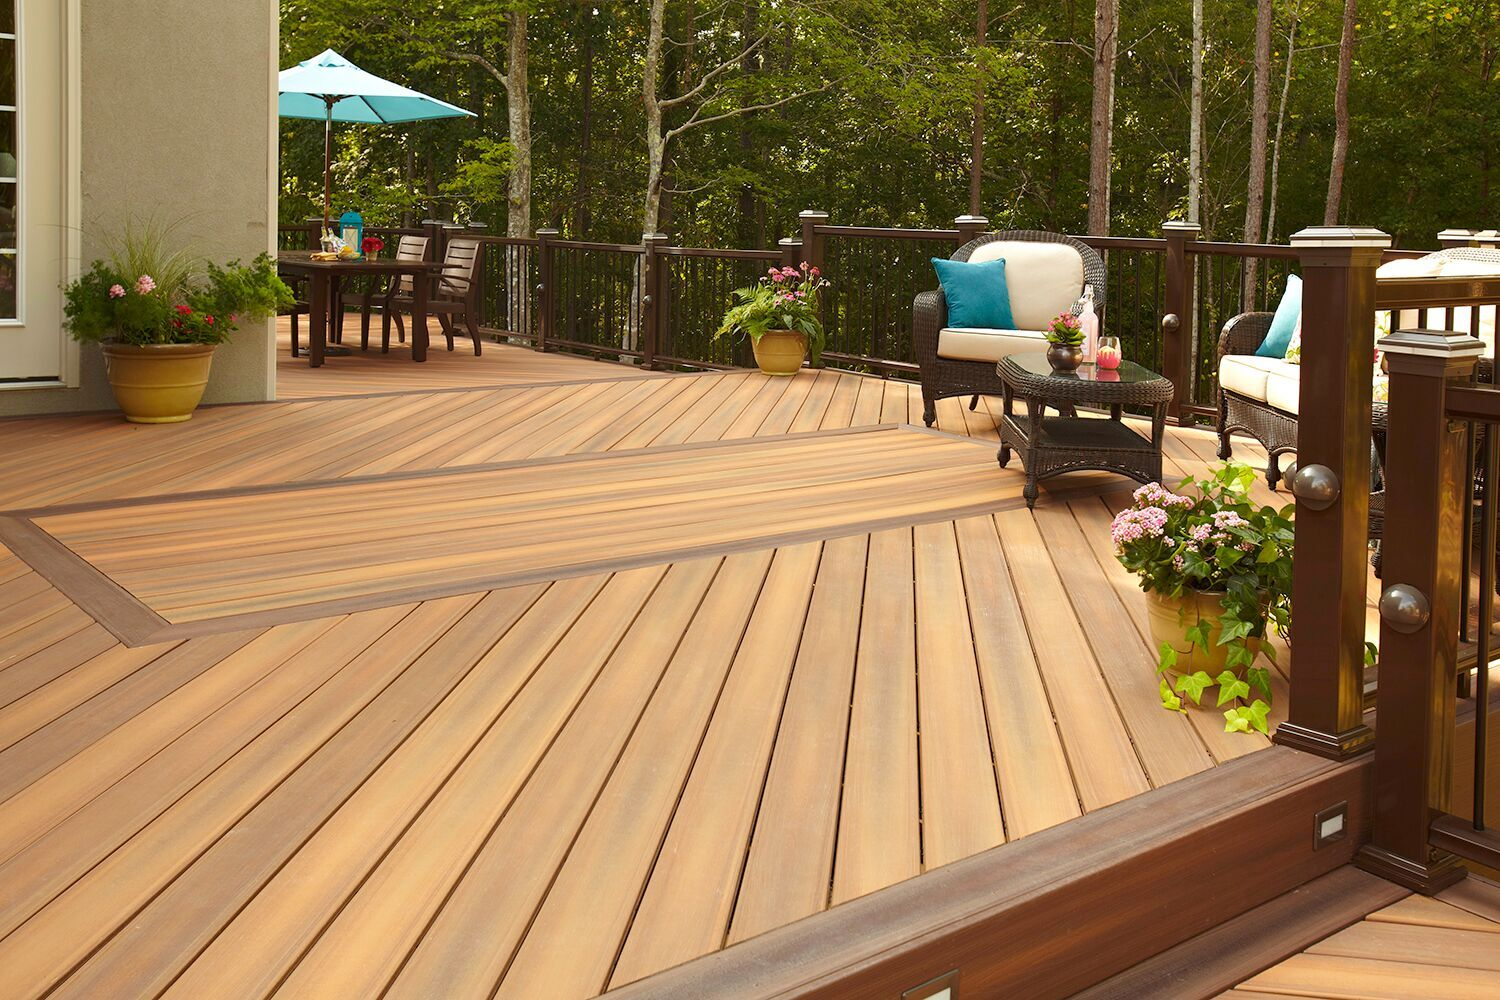 Design your deck quickly and easily with the new fiberon